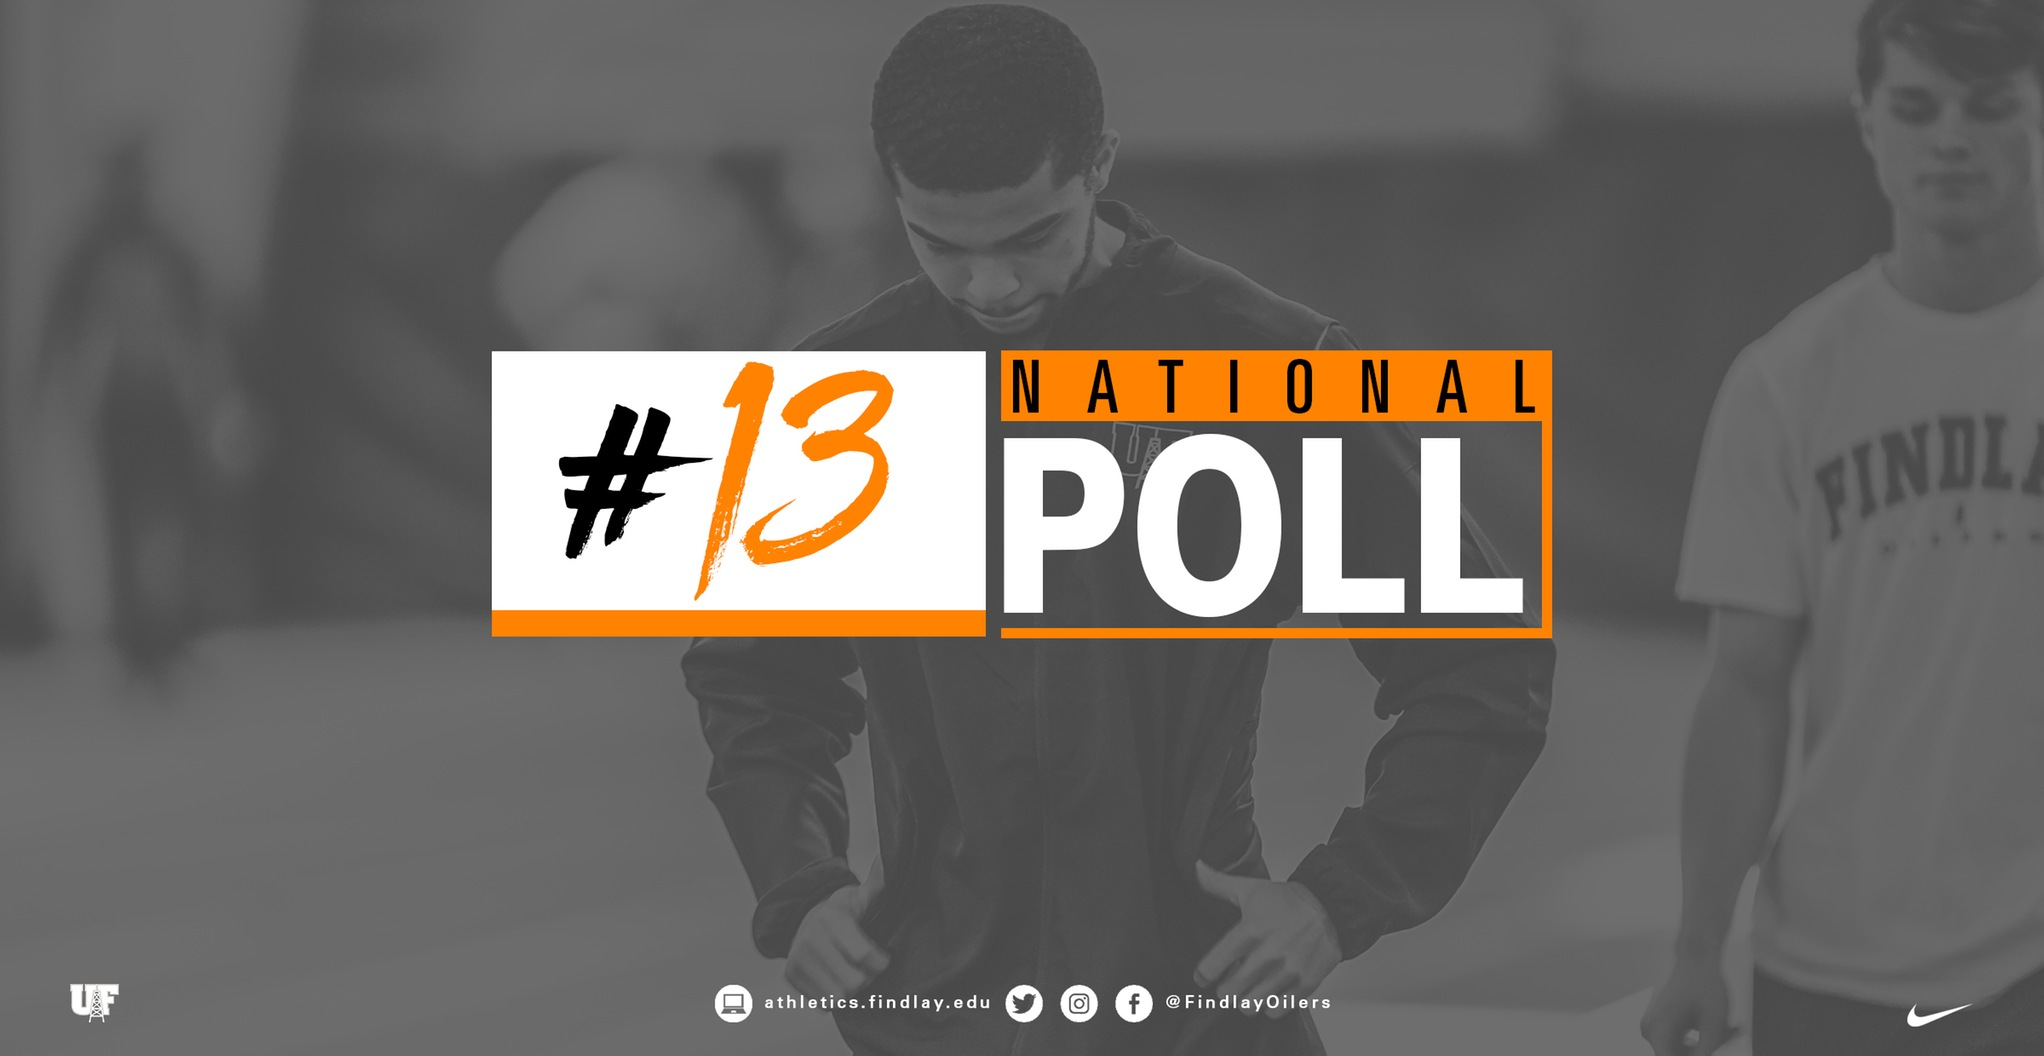 Oilers Ranked 13th in Latest National Poll